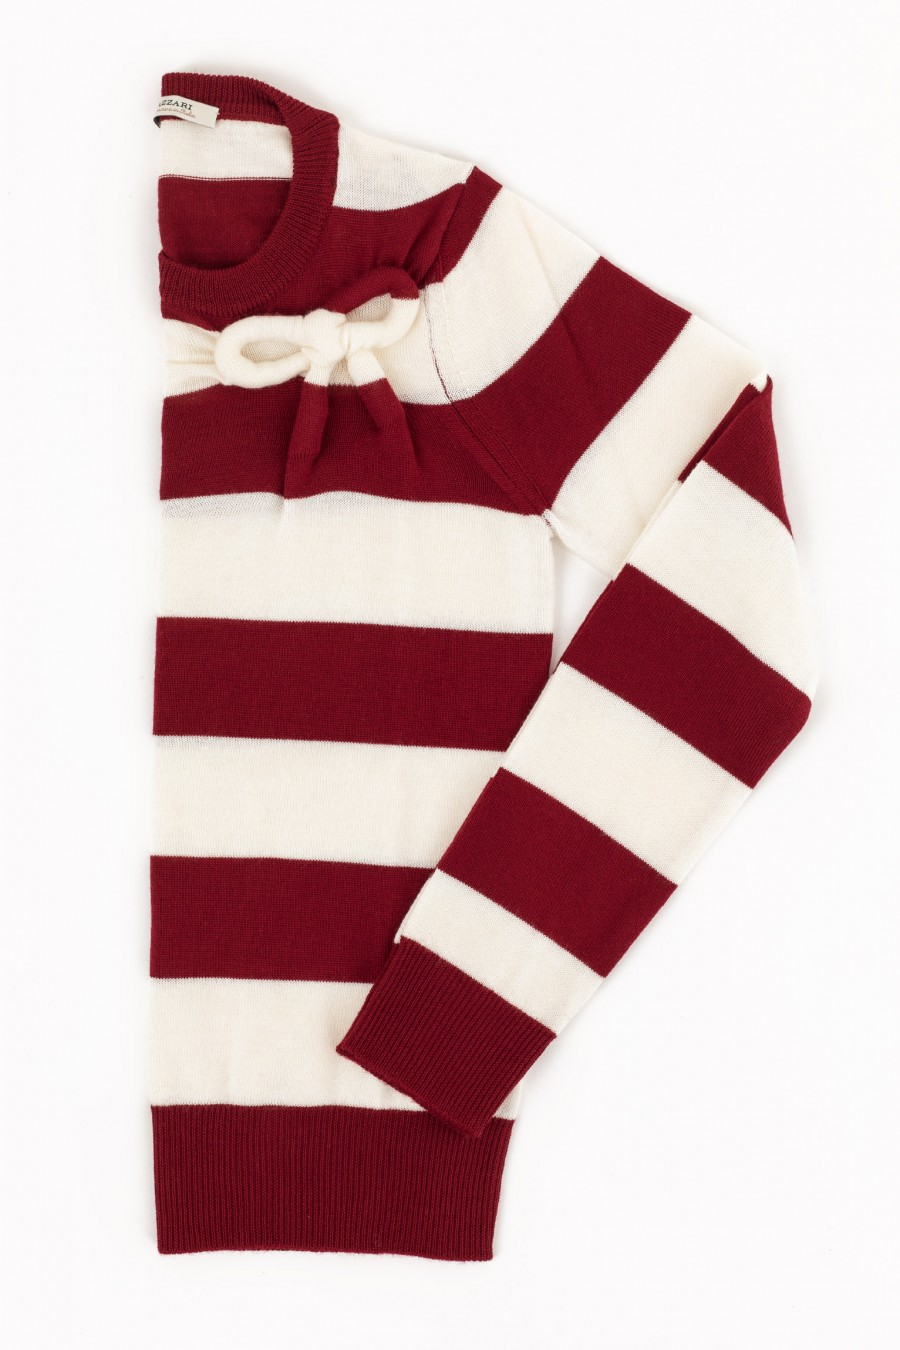 red and white stripy woolen sweater